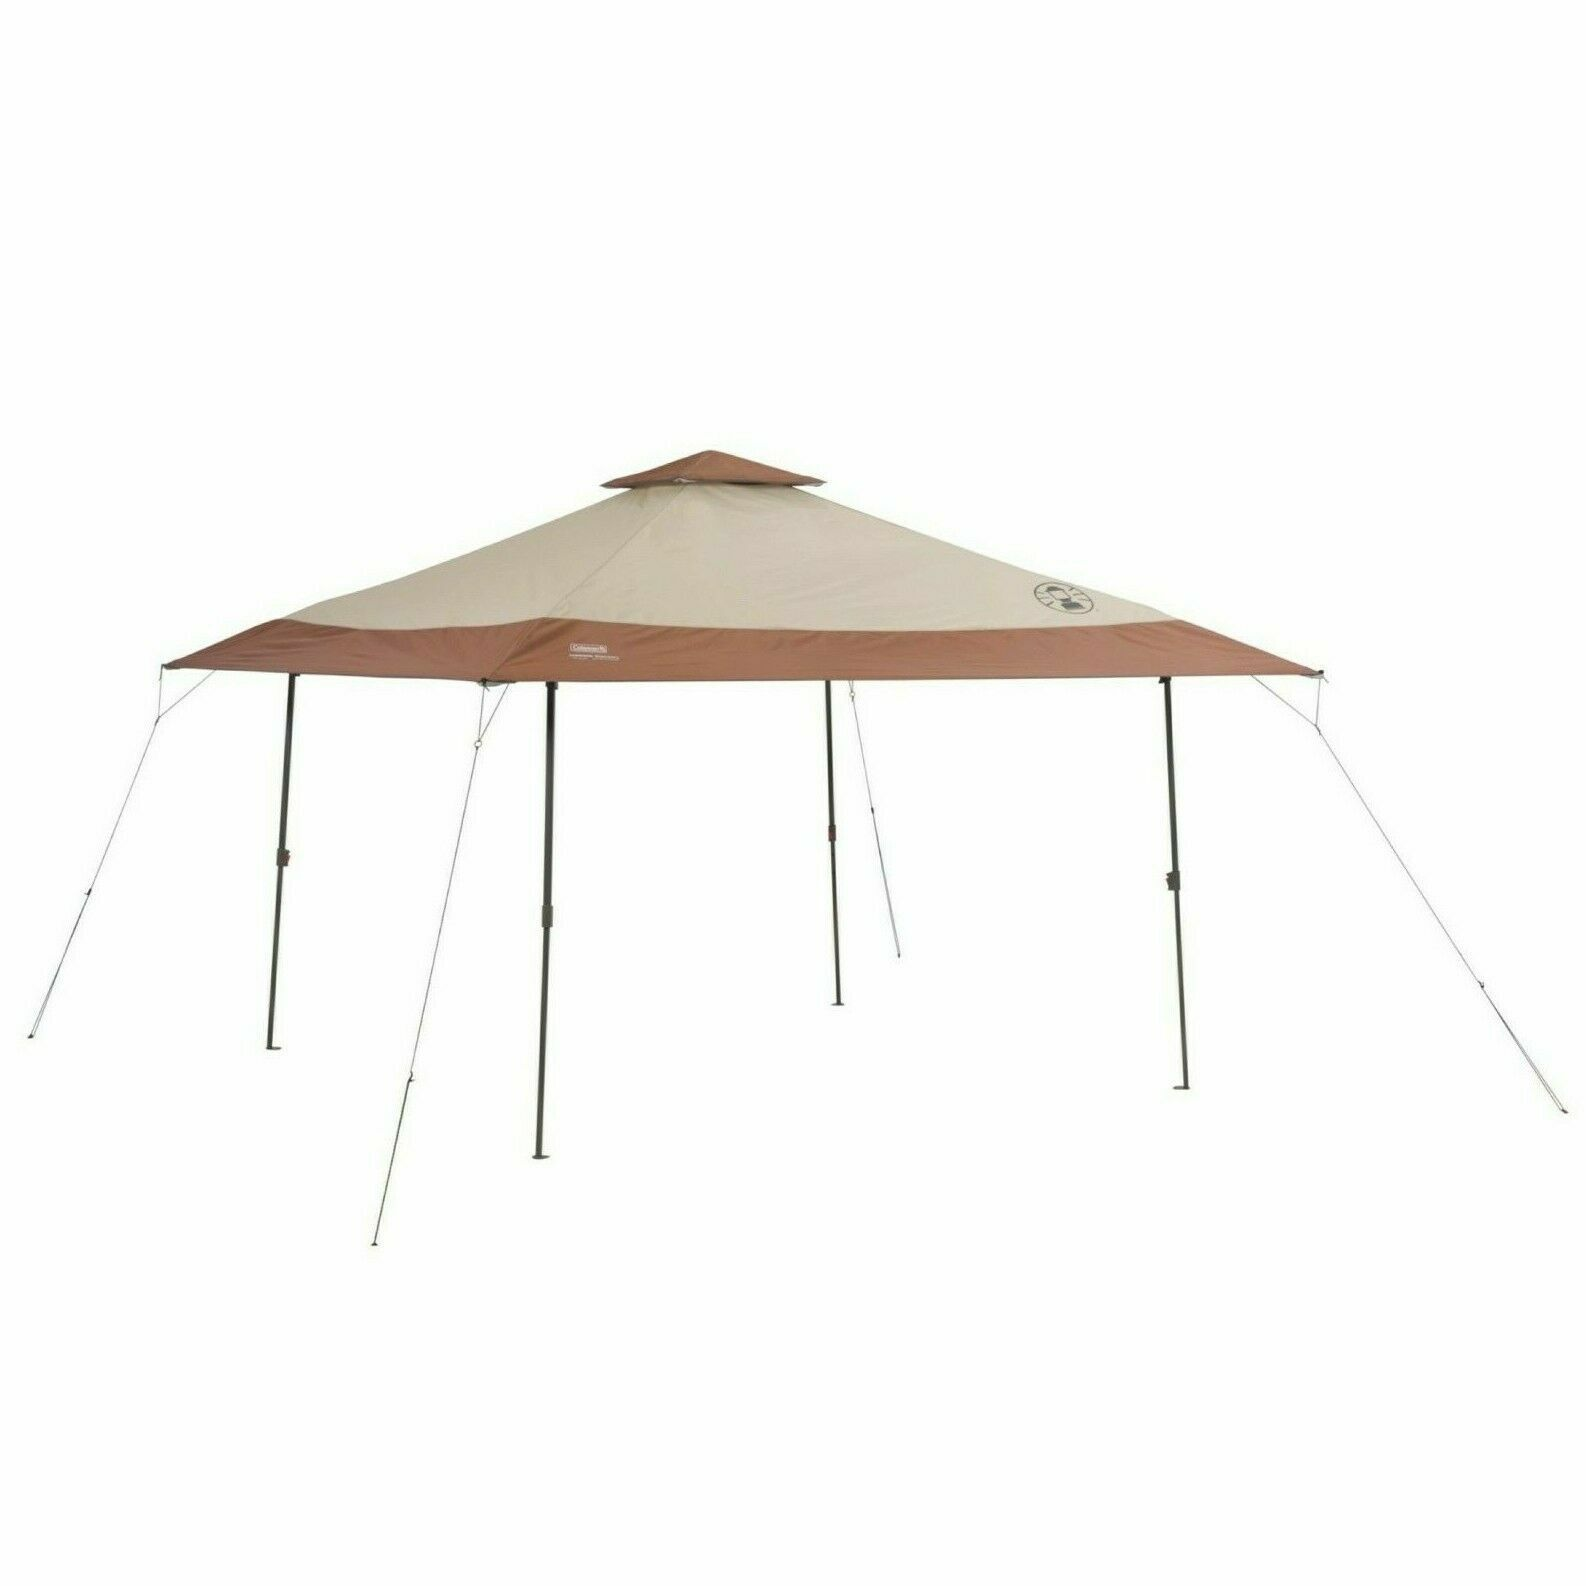 Coleman Instant Beach Canopy  13 x 13 ft NEW - Tan